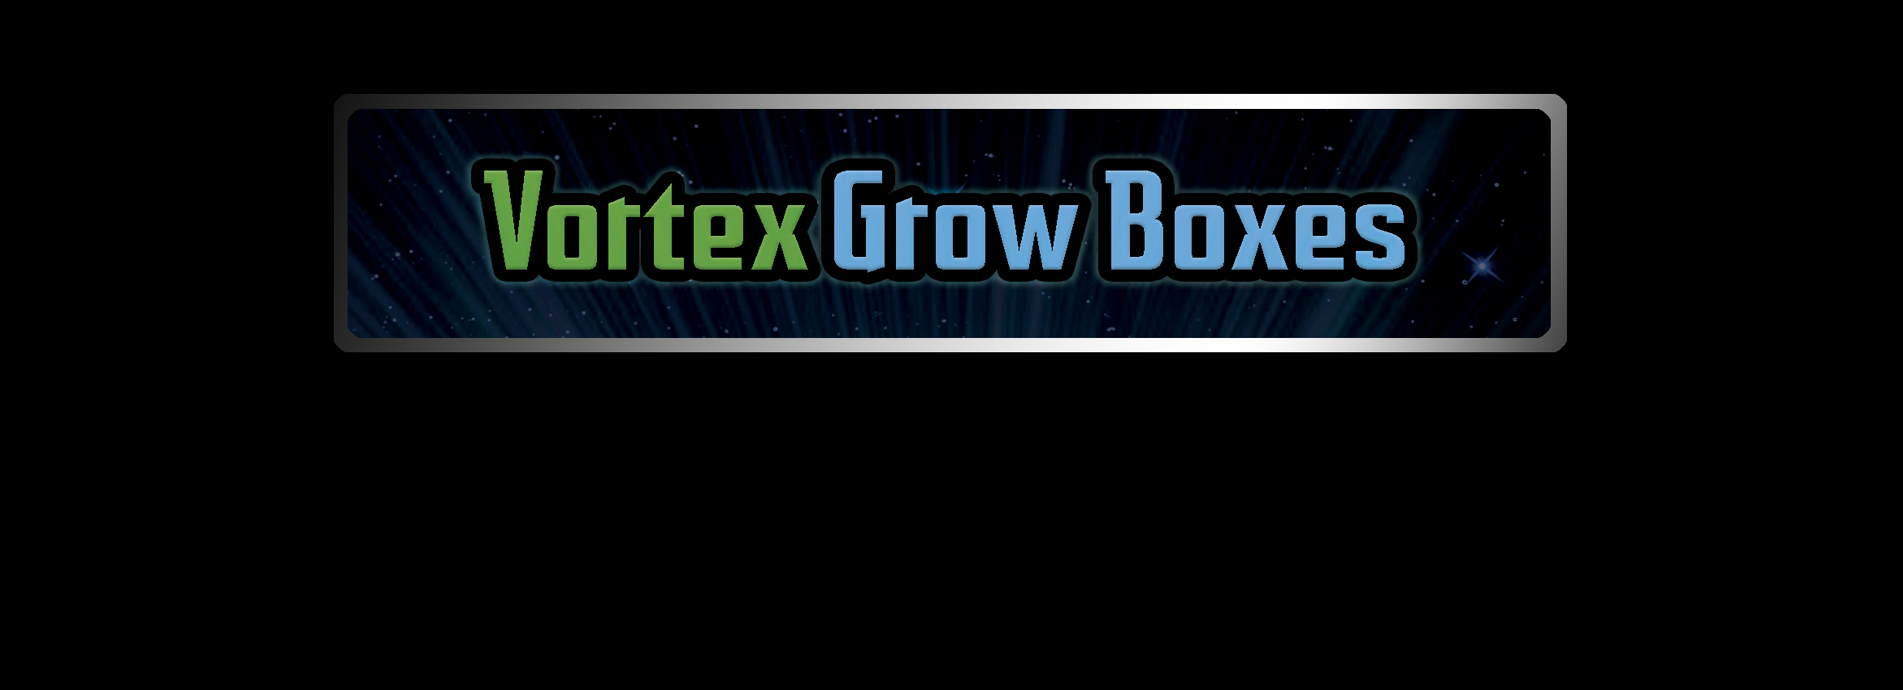 Vortex-grow-box-uk2